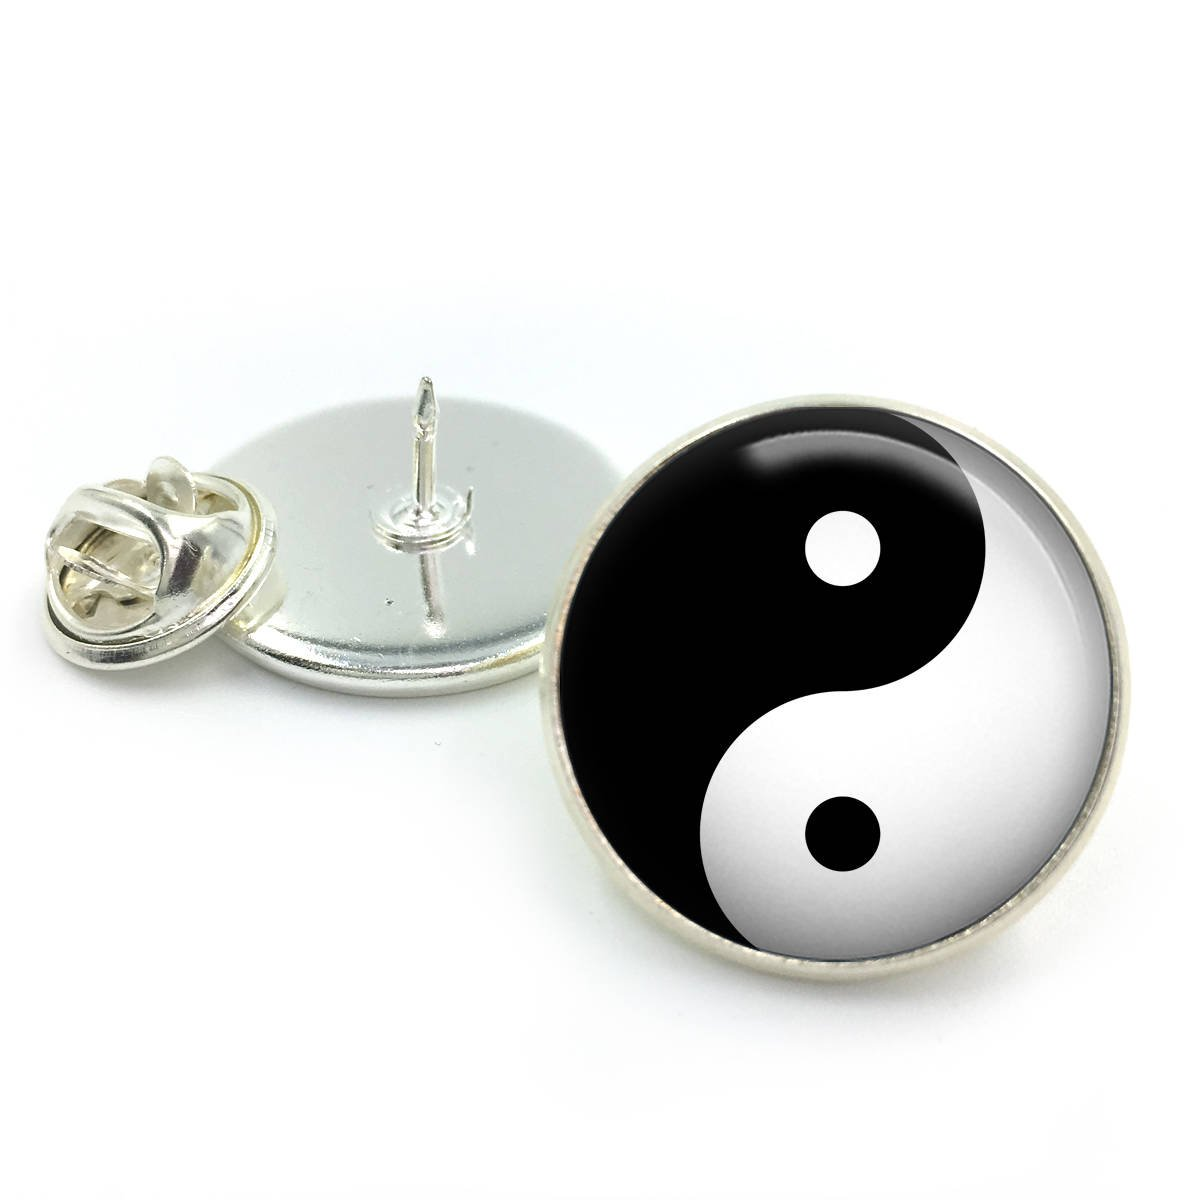 Yin-Yang Lapel Pin Badge| lapel| Gift for him| yin-yang| yin| Gift| gift for him| pin badge ButterflyNBeez